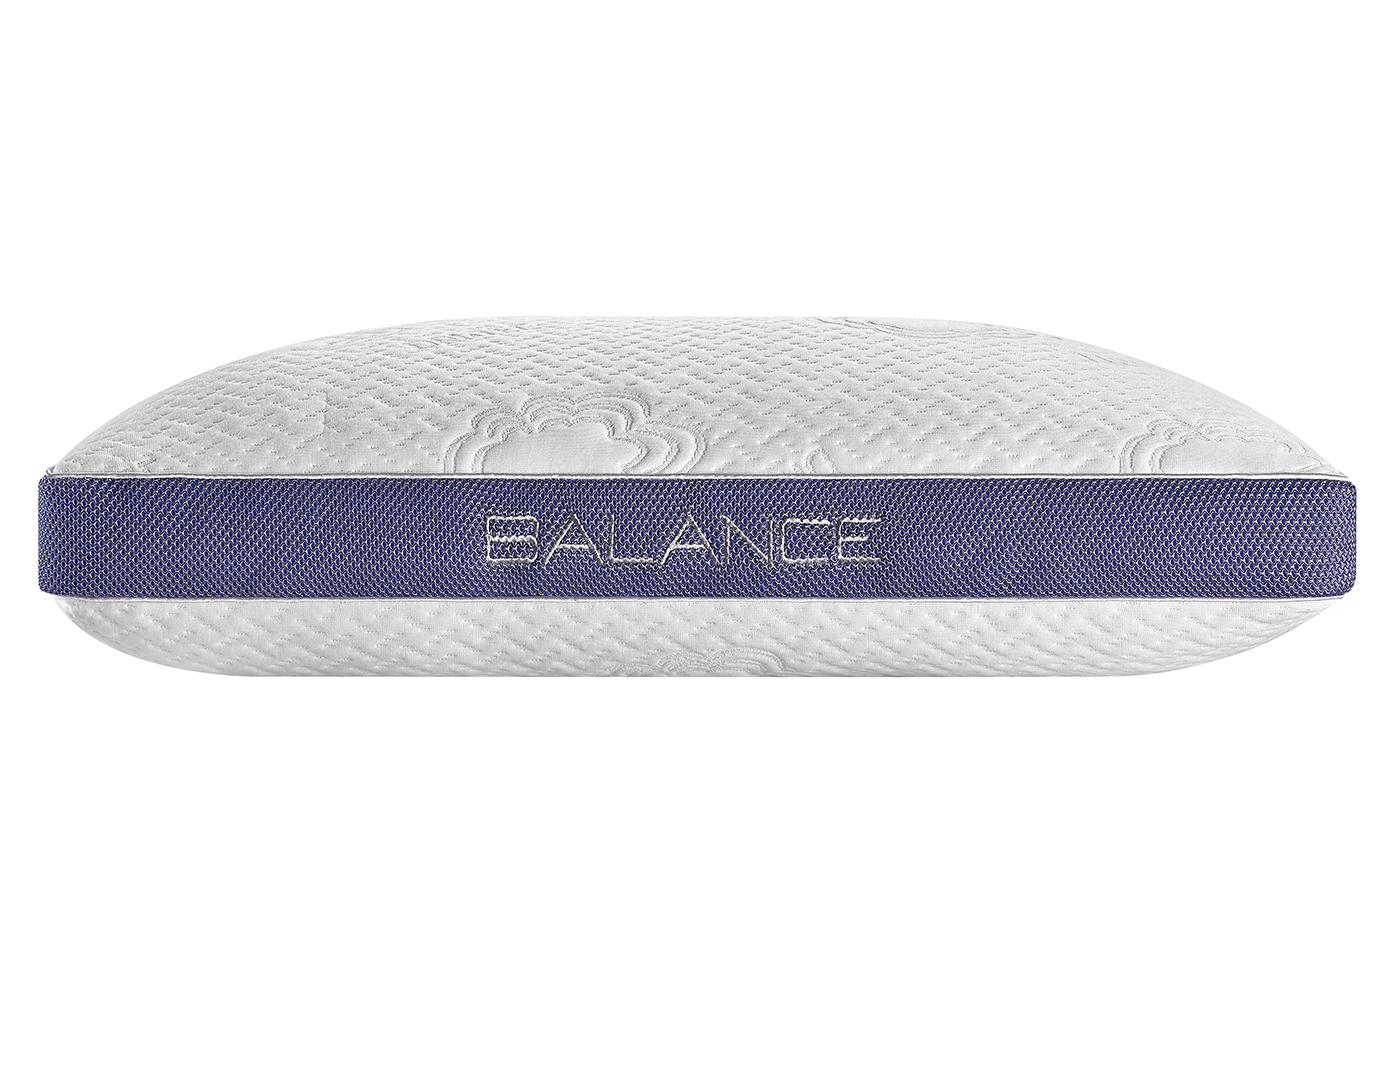 bedgear Balance 0.0 Queen Pillow